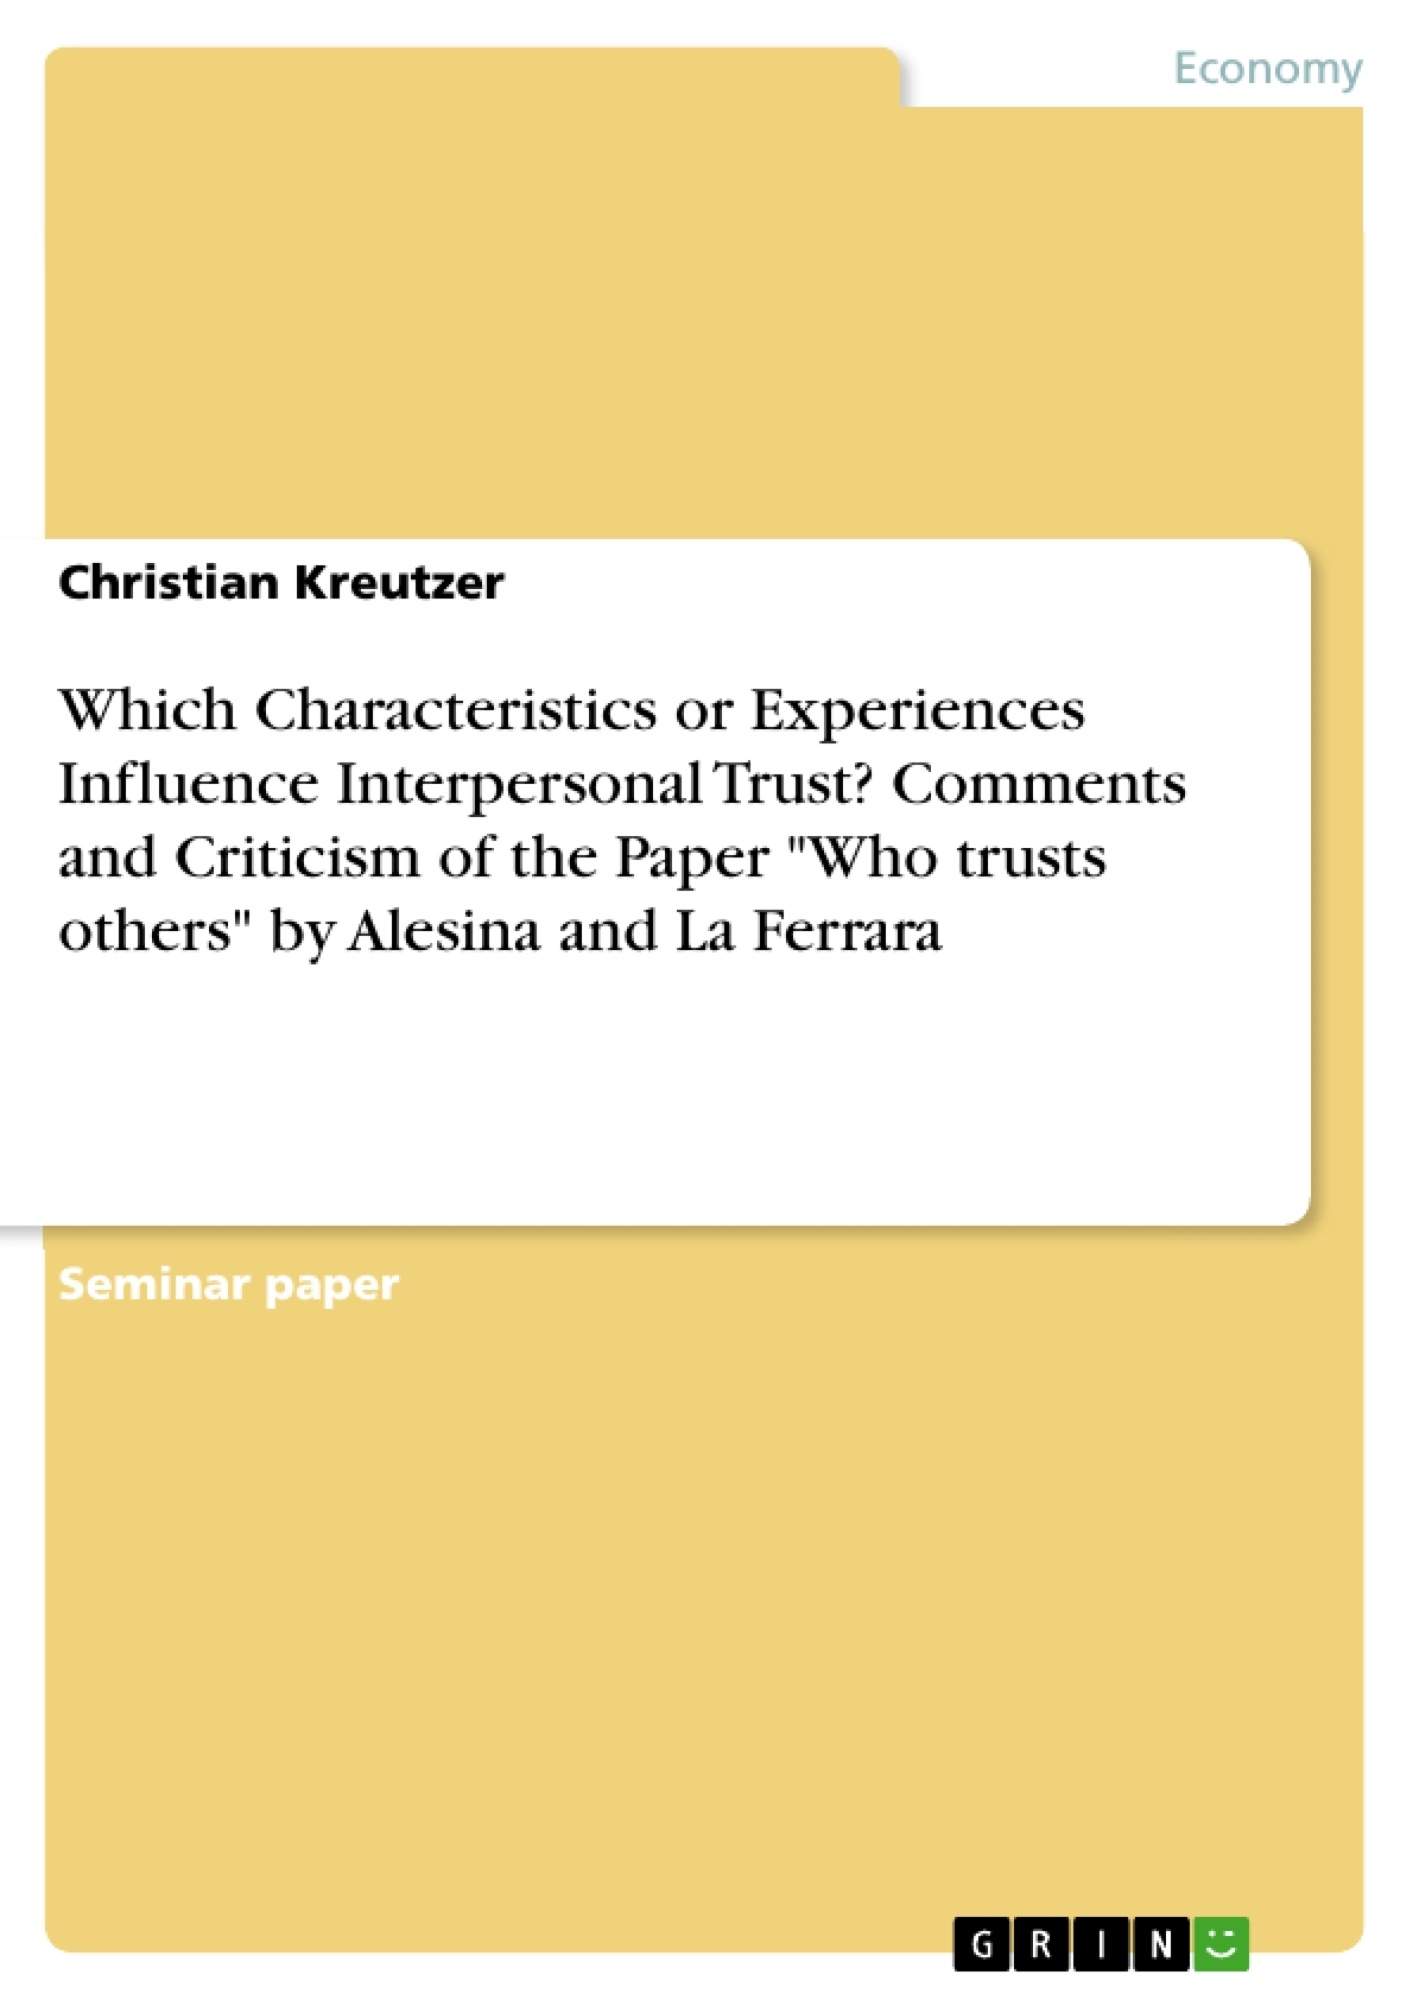 """Title: Which Characteristics or Experiences Influence Interpersonal Trust? Comments and Criticism of the Paper """"Who trusts others"""" by Alesina and La Ferrara"""